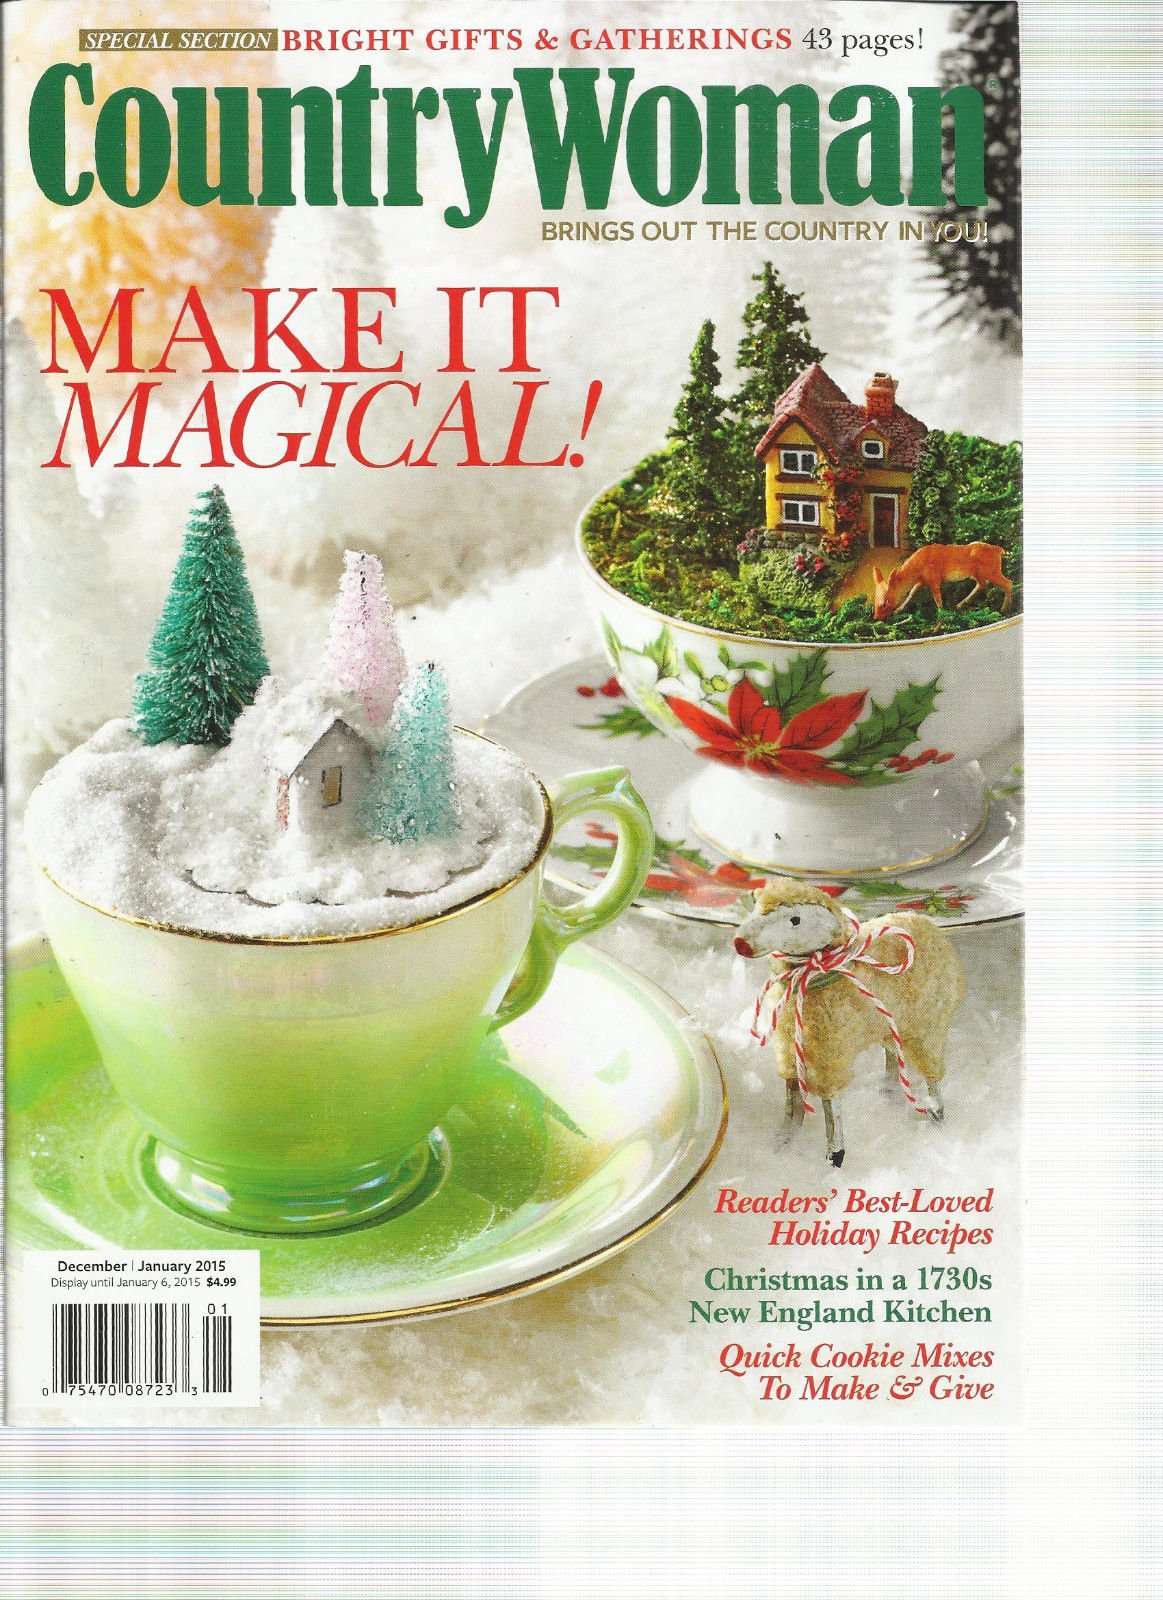 COUNTRY WOMAN MAGAZINE, DECEMBER, 2014 / JANUARY, 2015 (MAKE IT MAGICAL !)